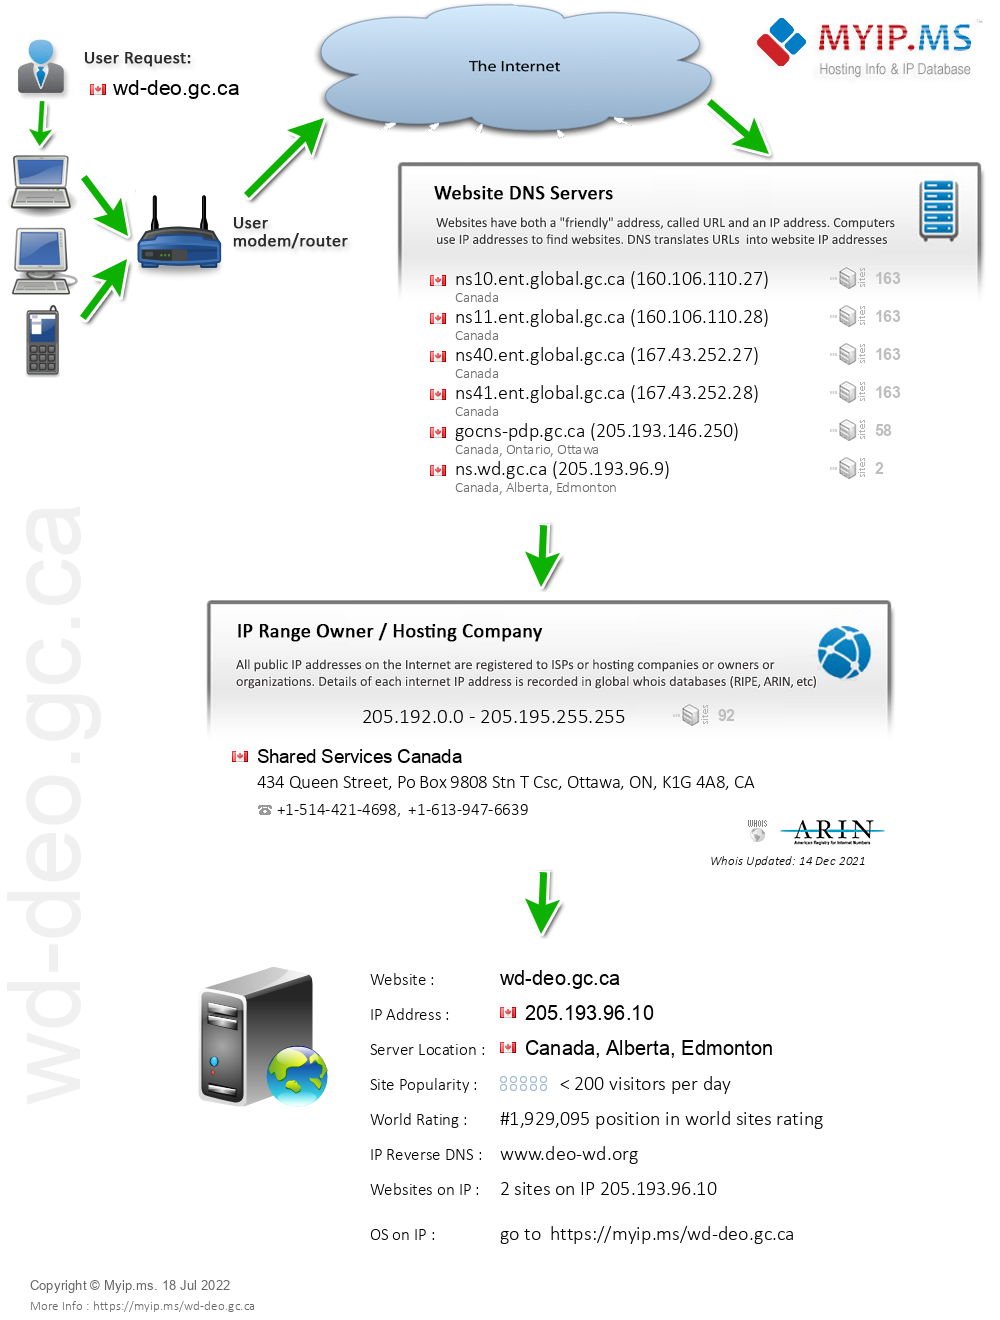 Wd-deo.gc.ca - Website Hosting Visual IP Diagram